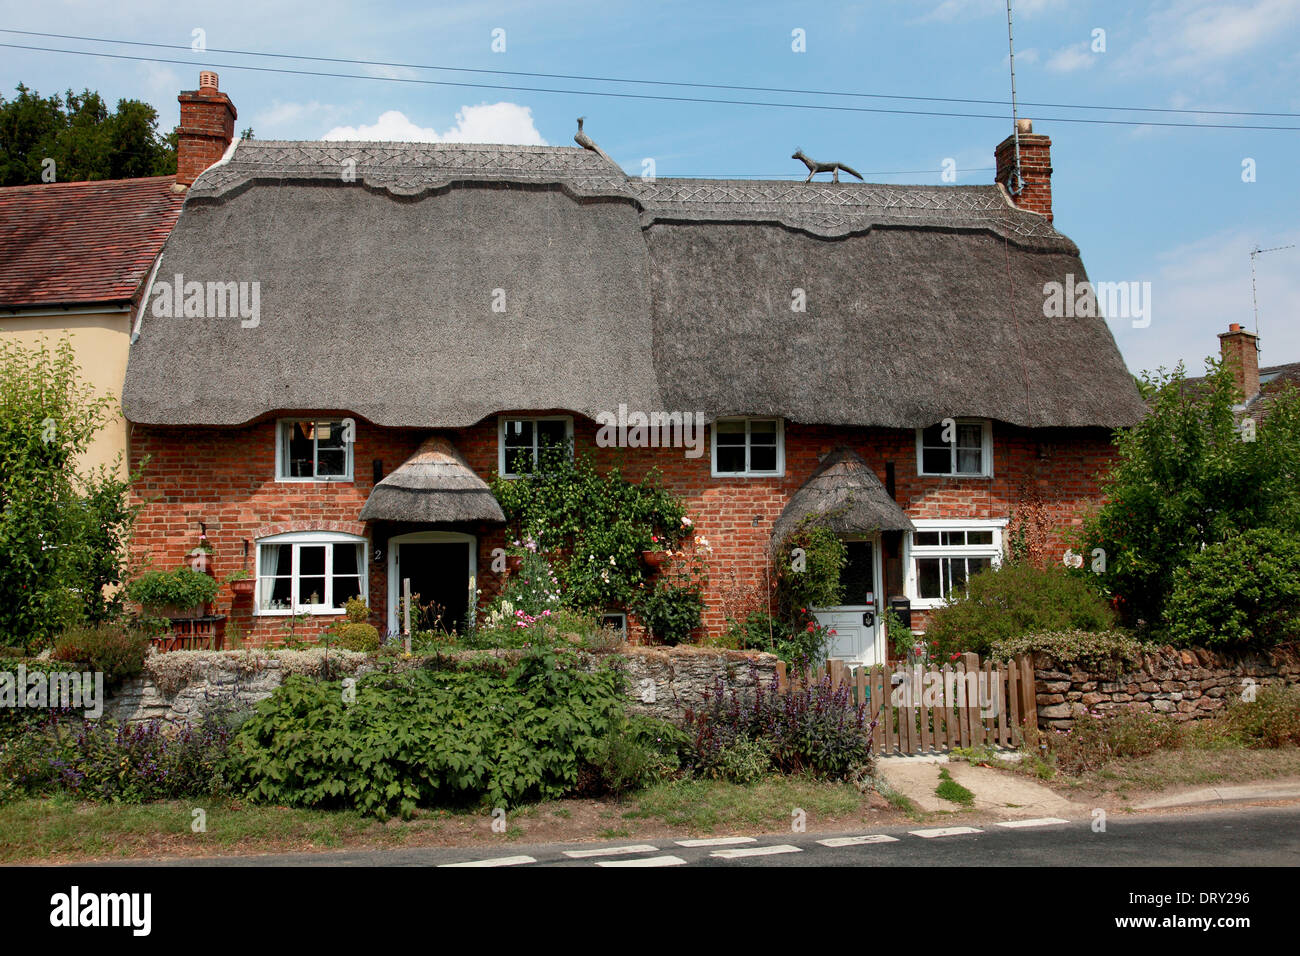 Thatched cottages in the village of Cropredy, Oxfordshire - Stock Image